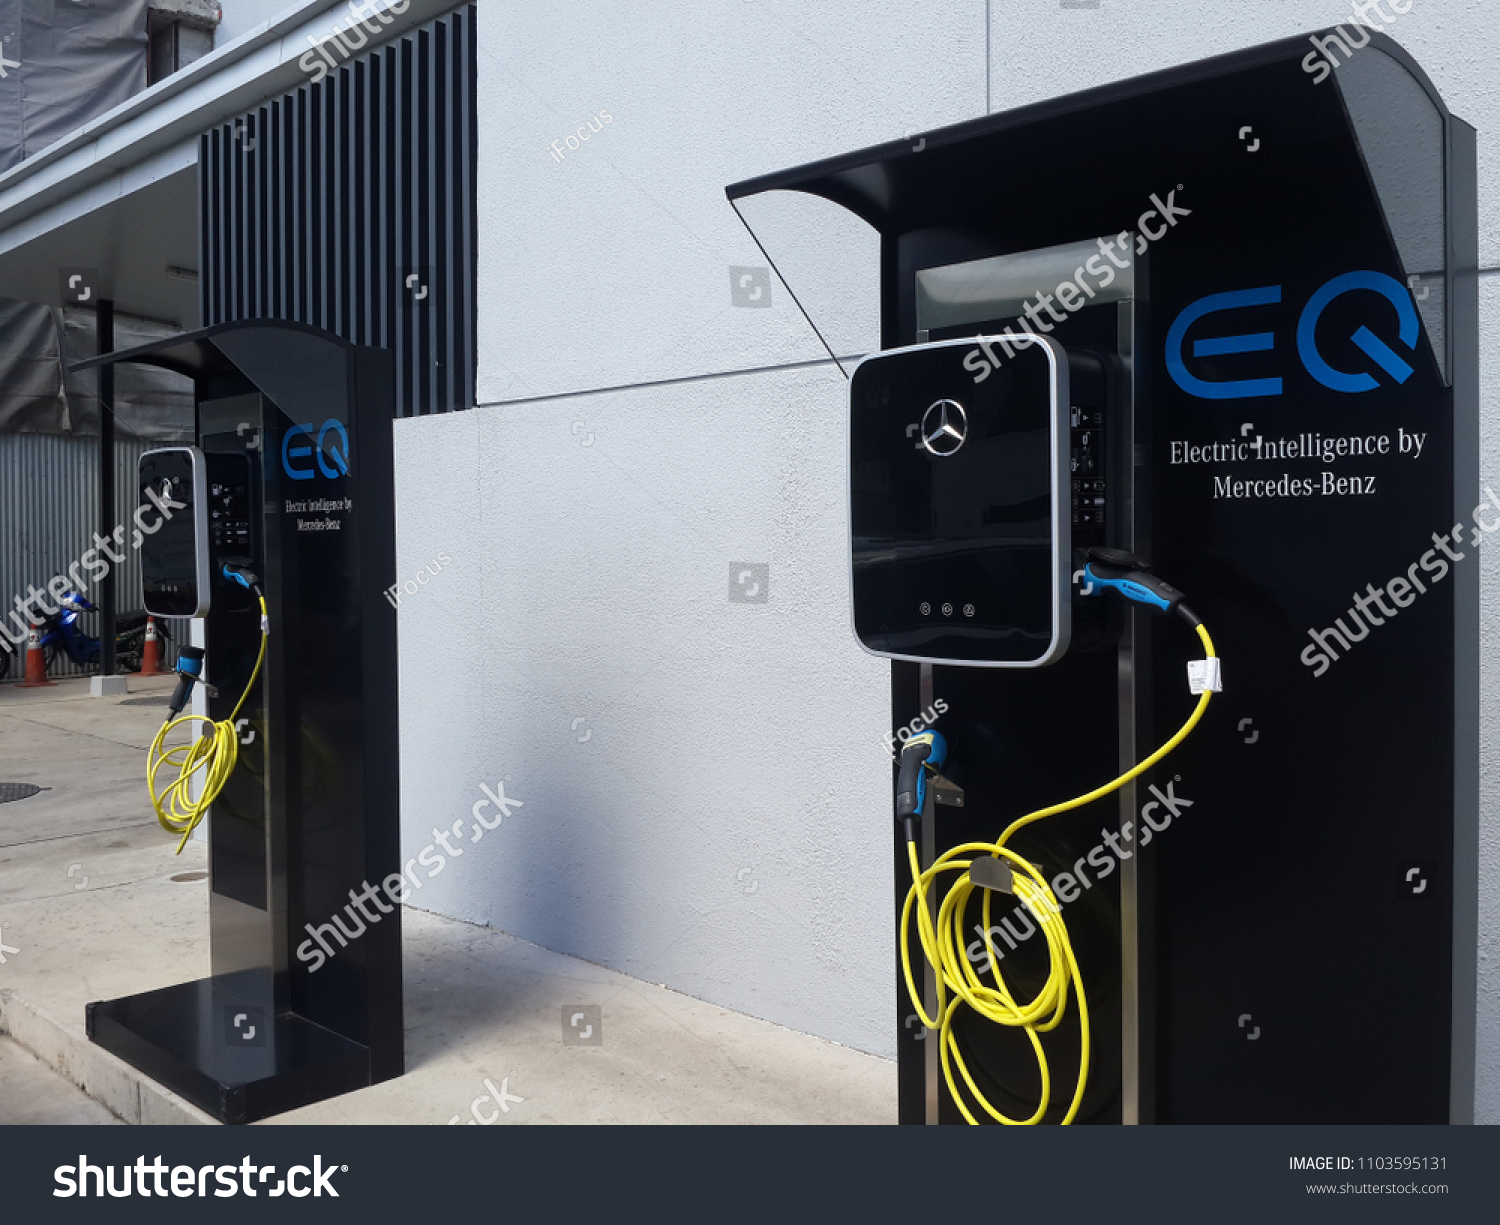 PAKKRET, NONTHABURI, THAILAND - JUNE 2, 2018: A Wallbox charging station tailored to Mercedes-Benz EQ vehicles is available outside a store on June 2, 2018 in Pakkret, Nonthaburi, Thailand.